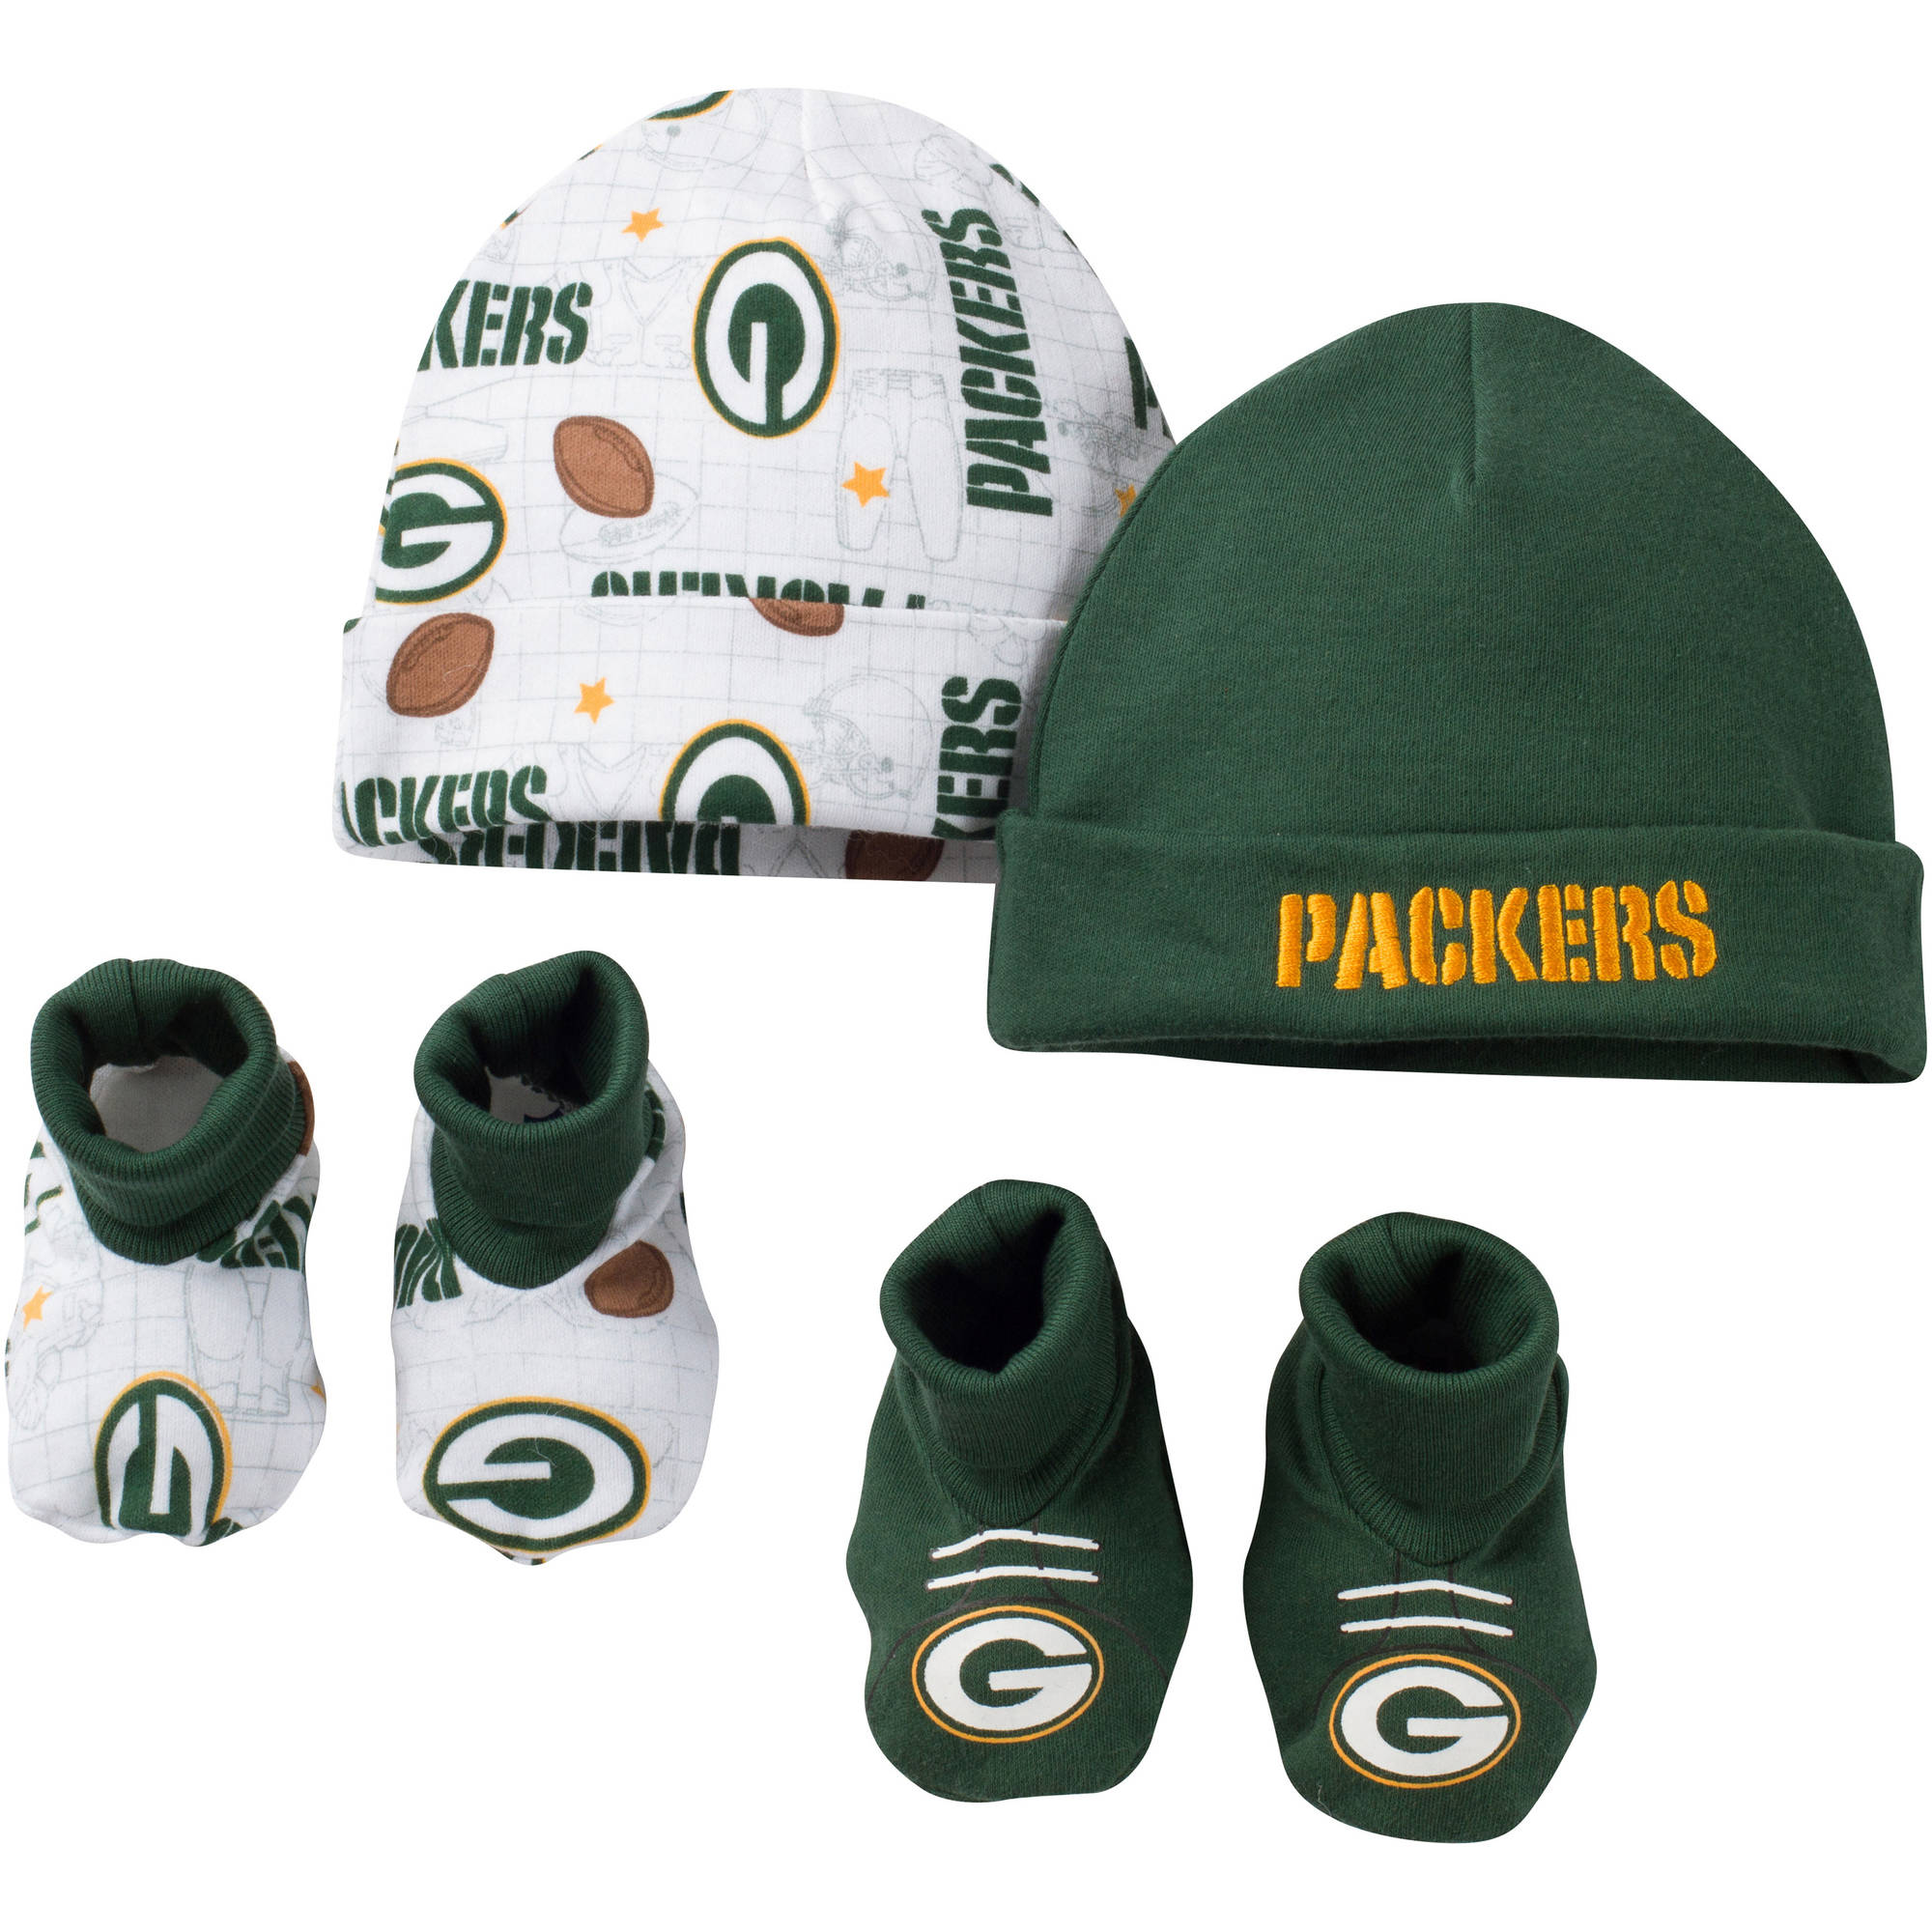 Gerber Childrenswear NFL Green Bay Packers Baby Boys Accessory Set, 2 Caps and 2 Booties, 4 - Piece